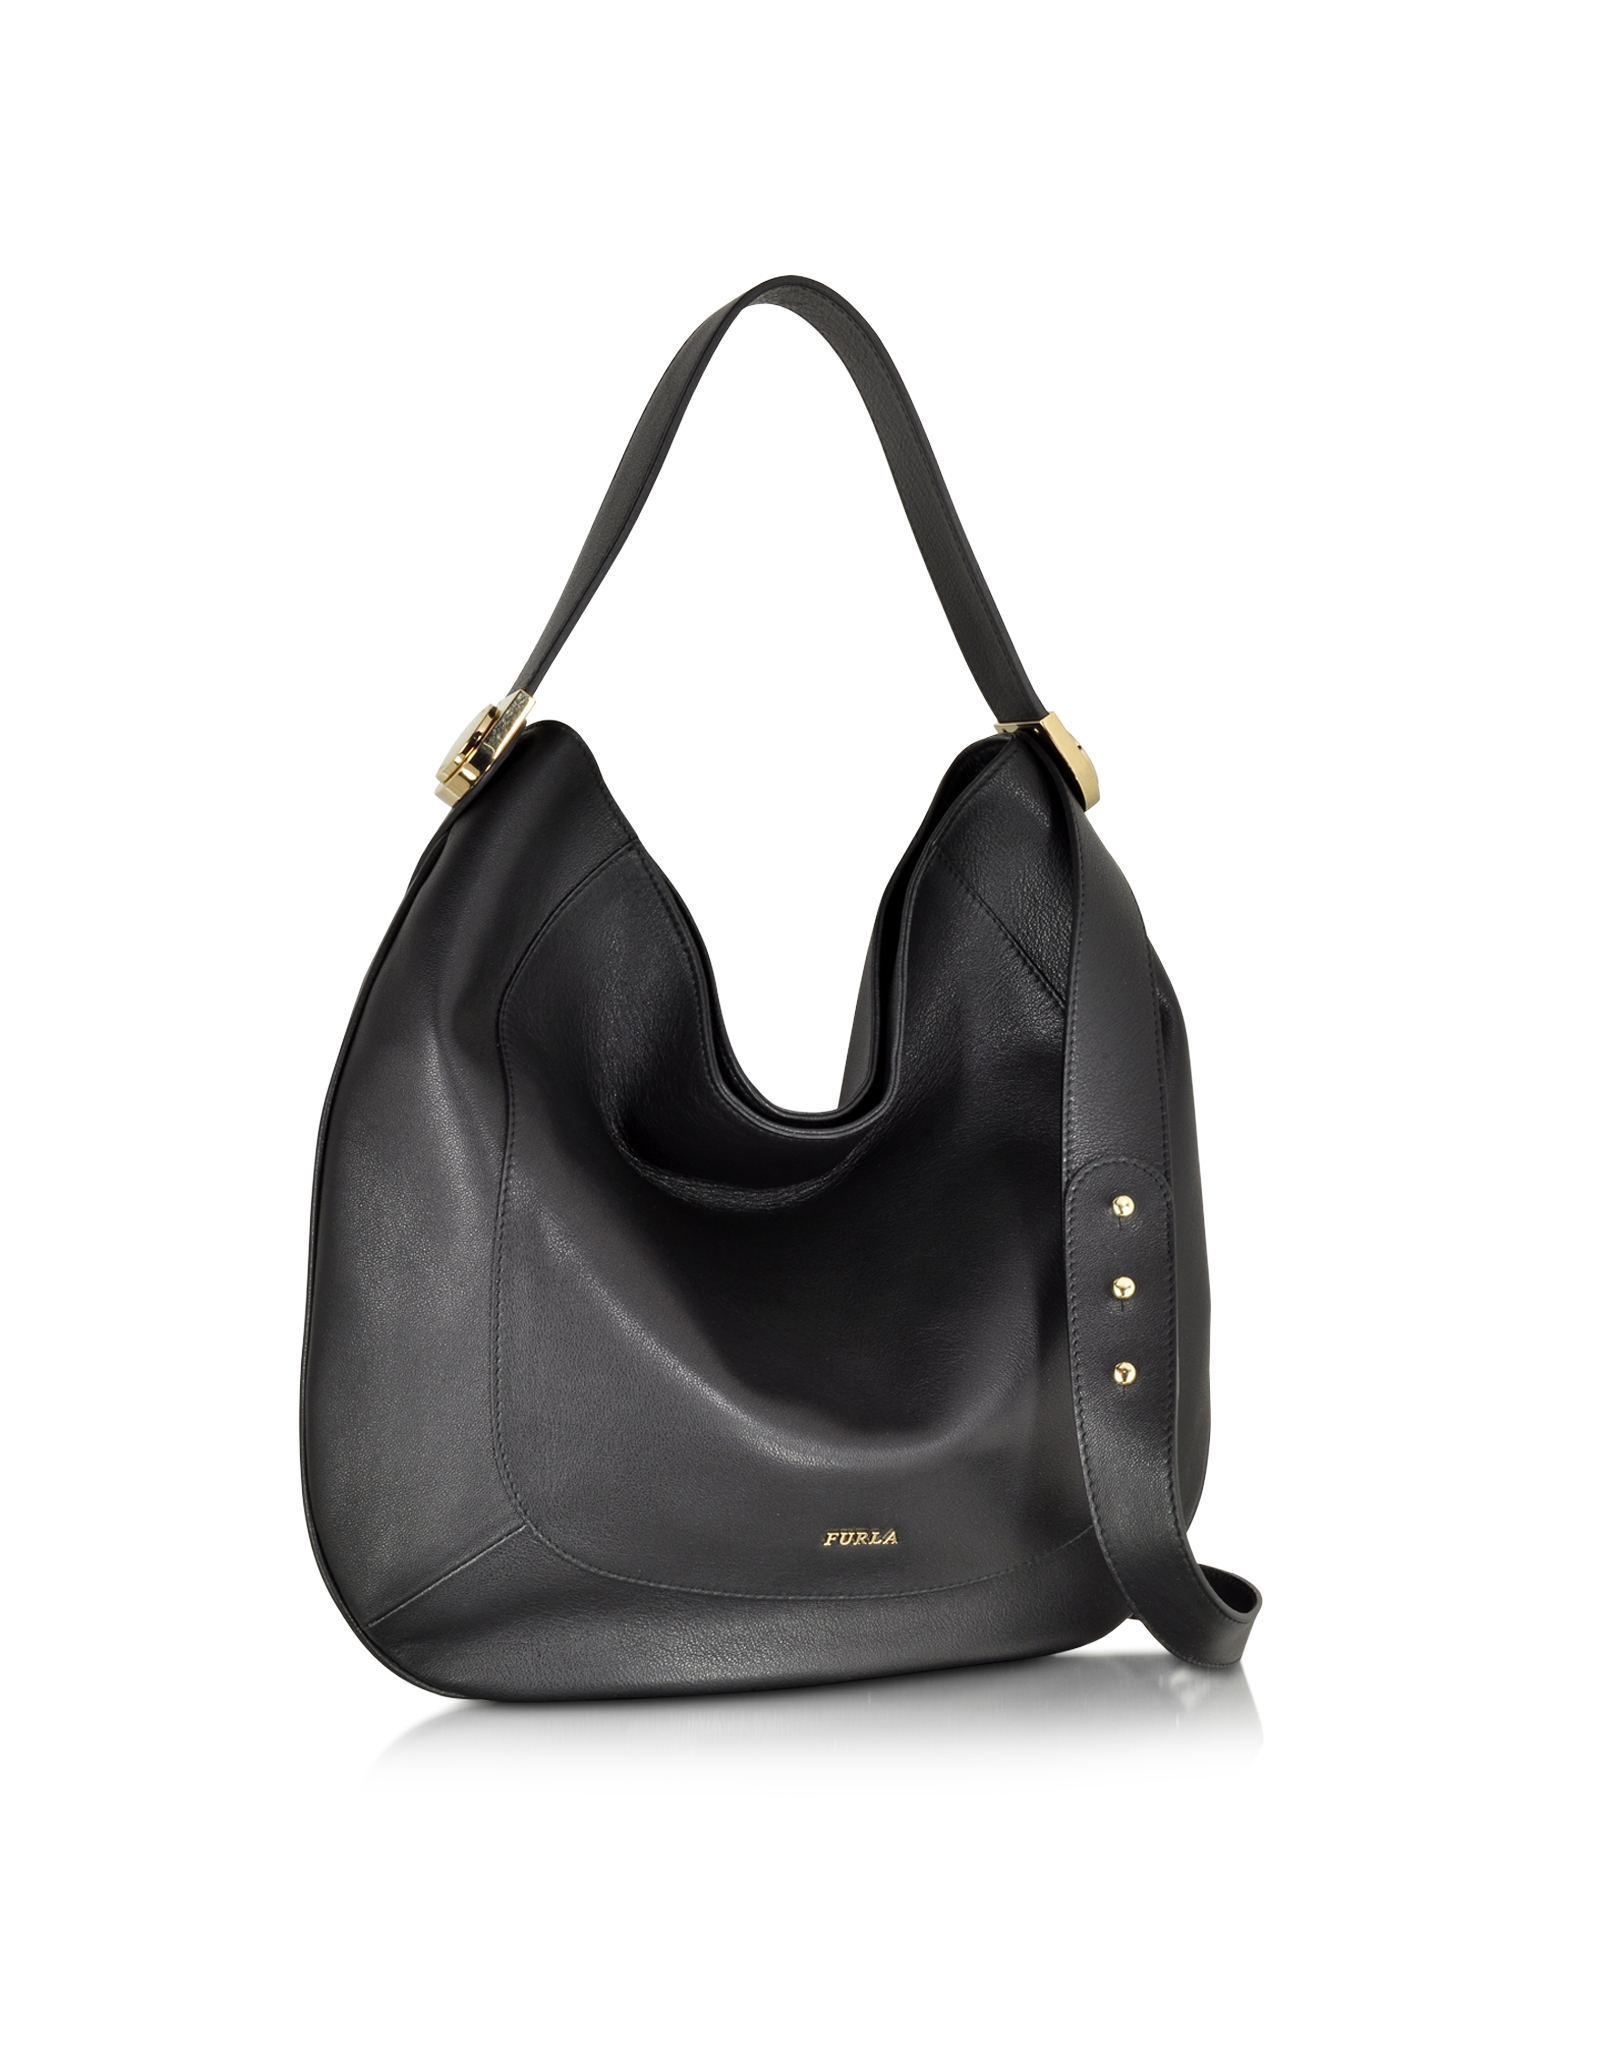 c99f269ac Furla Large Luna Onyx Leather Hobo Bag in Black - Lyst